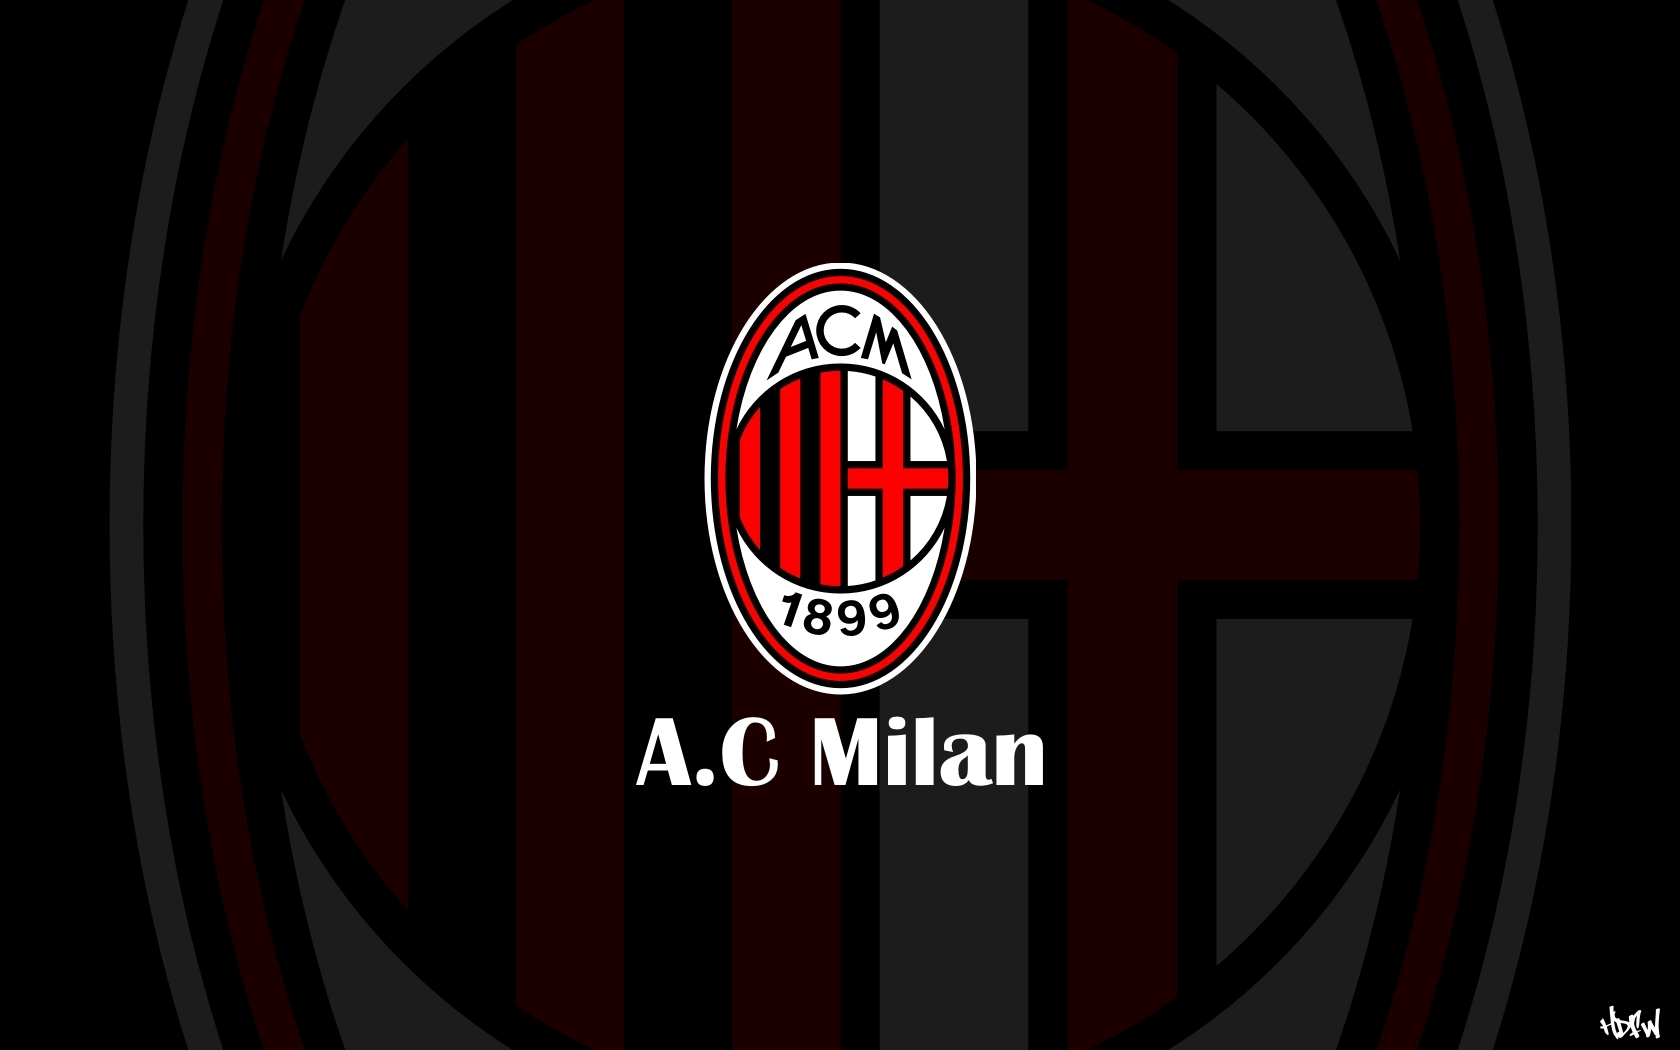 Ac Milan Logo Wallpaper Android Phones Wallpaper with 1680x1050 1680x1050